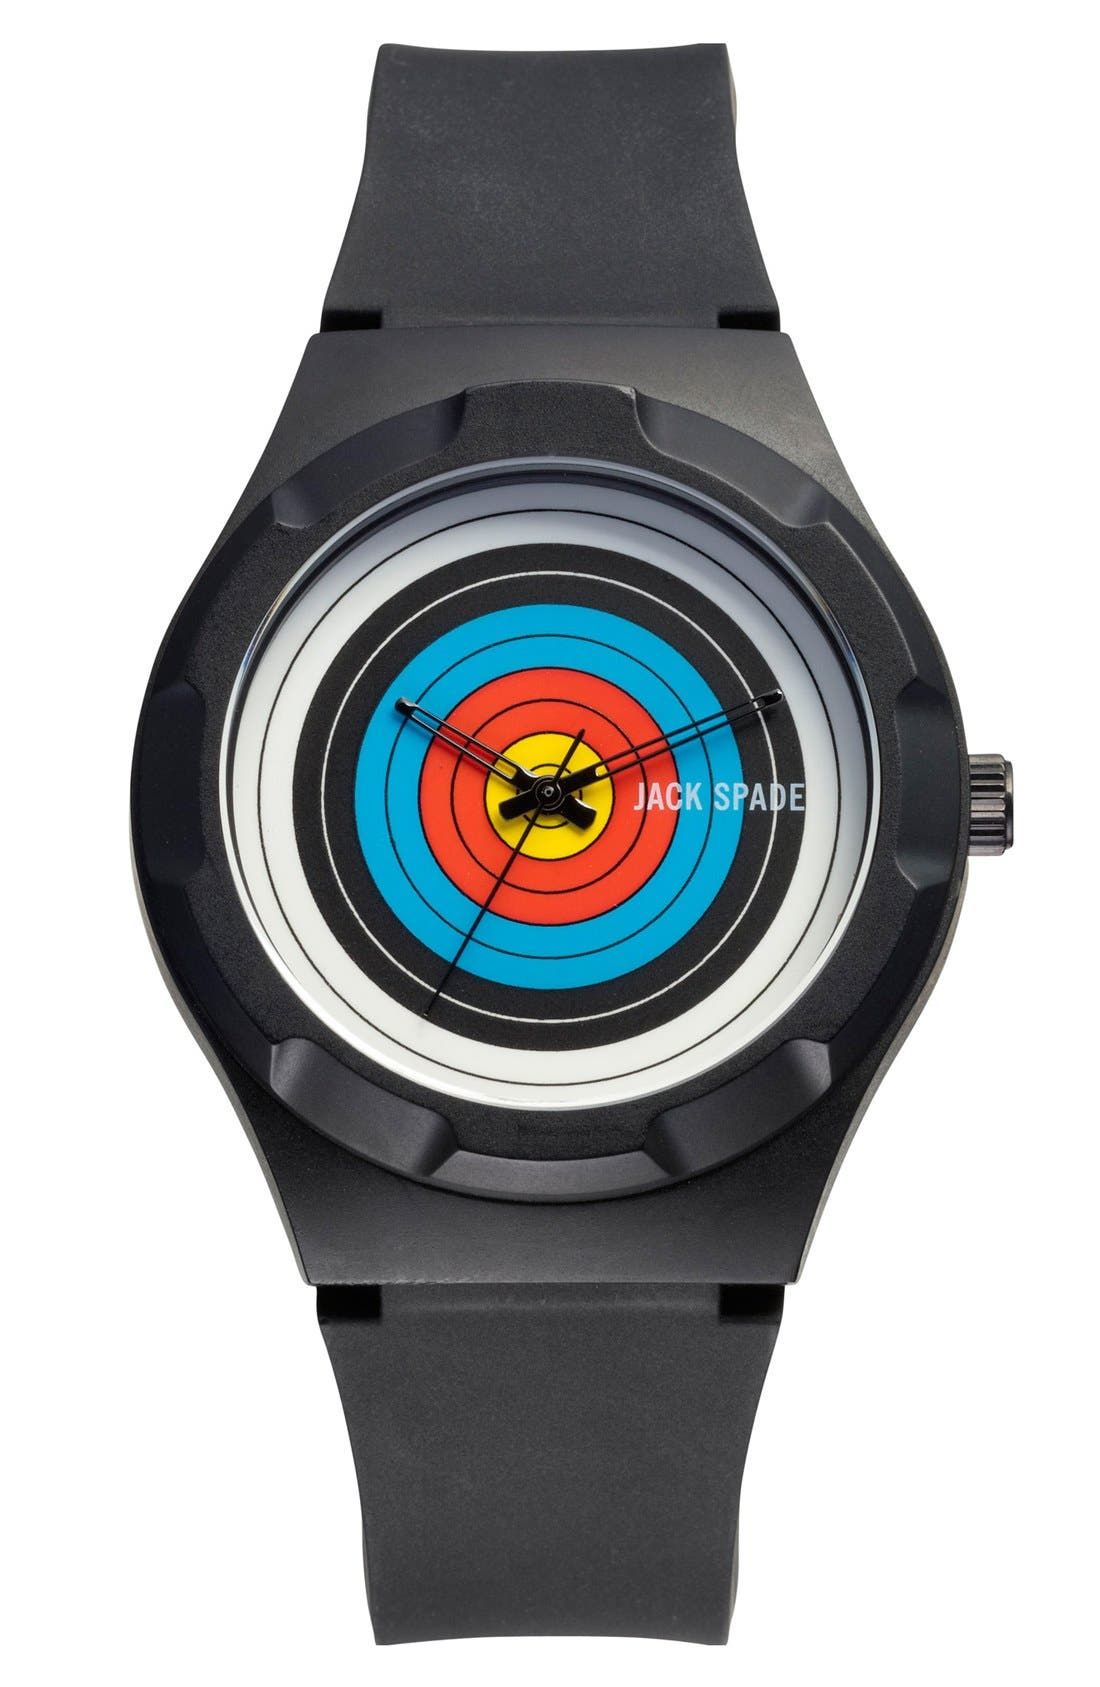 Alternate Image 1 Selected - Jack Spade 'Graphic - Archery' Round Watch, 38mm